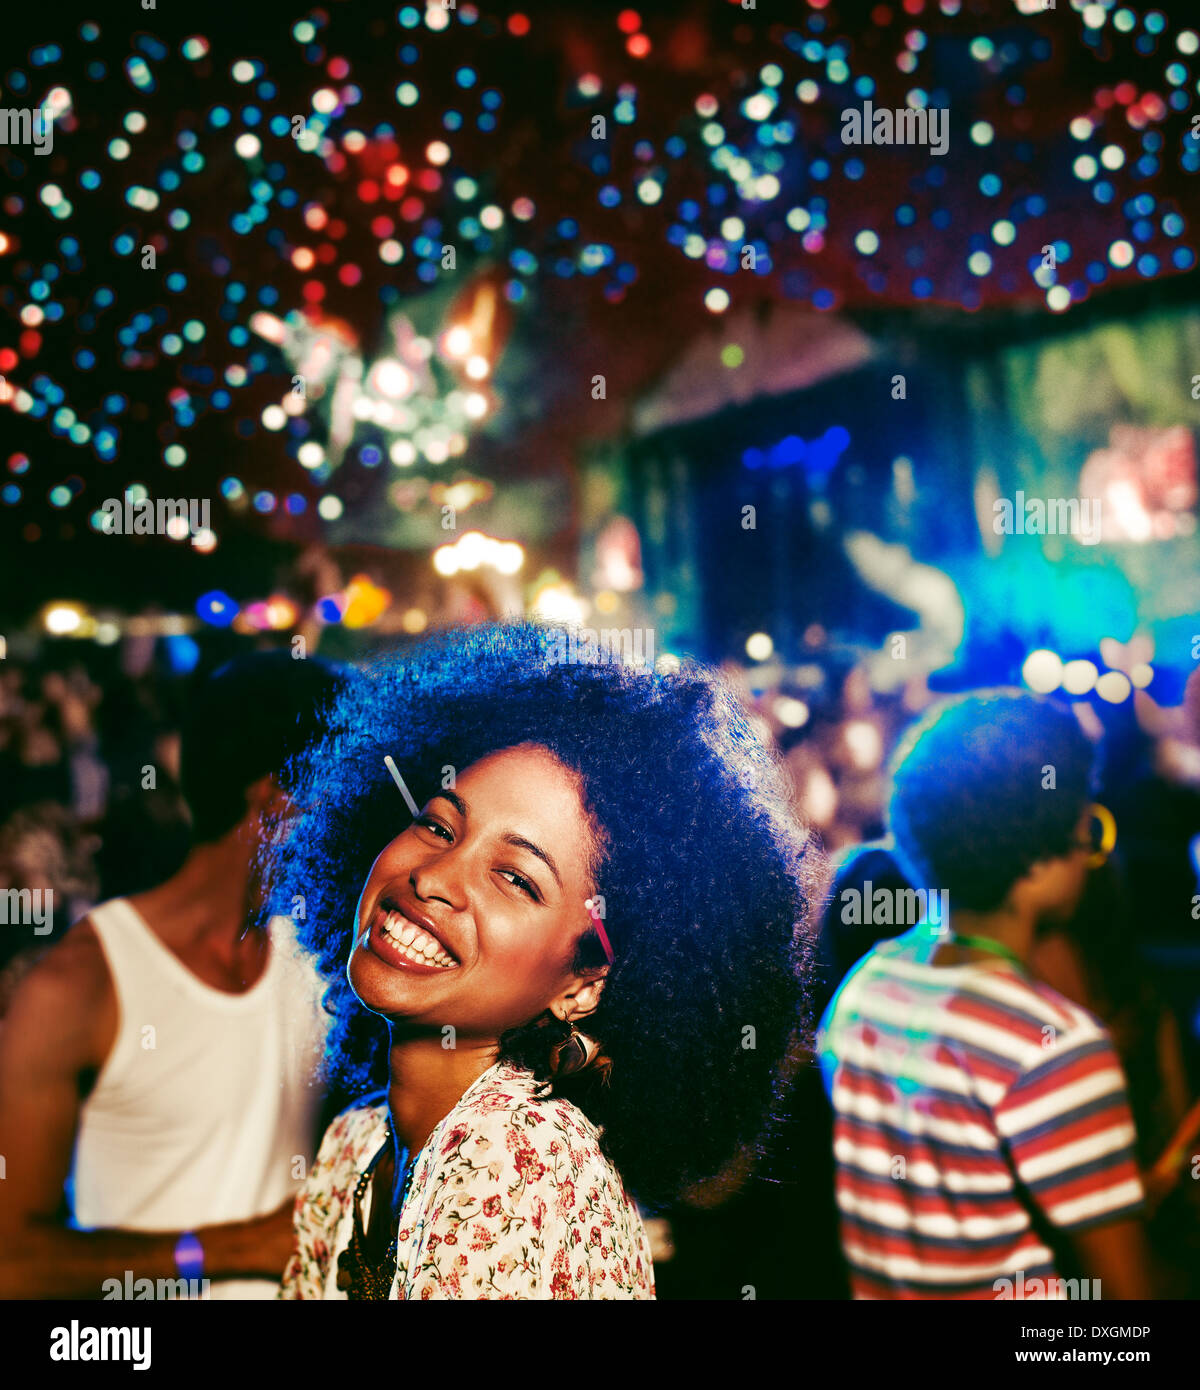 Portrait of enthusiastic woman at music festival - Stock Image